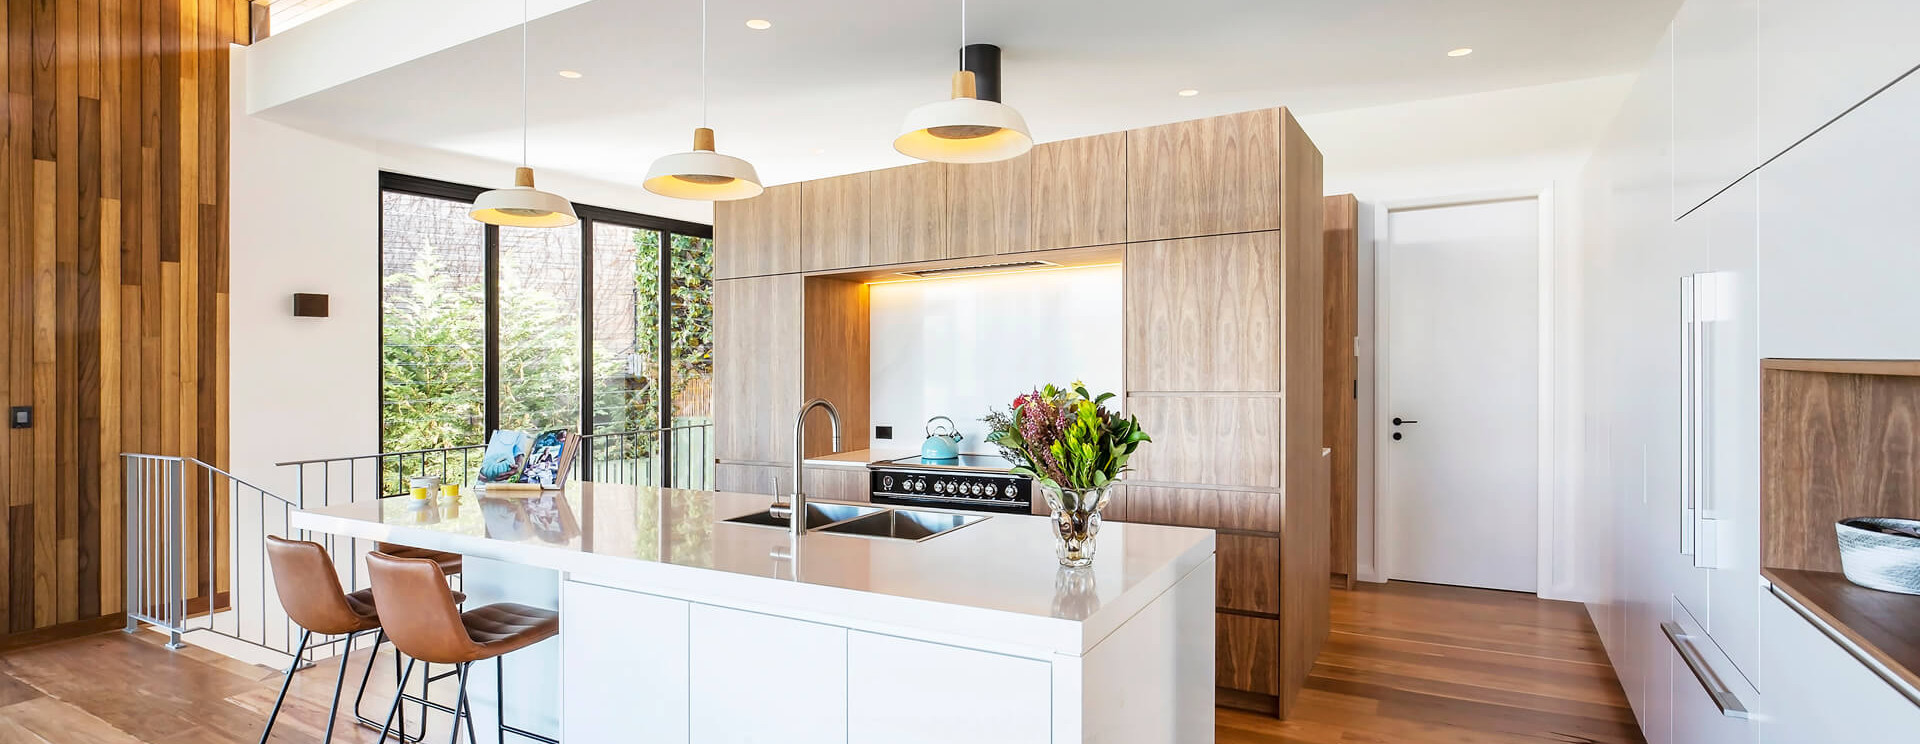 kitchen designs for kitchen renovations